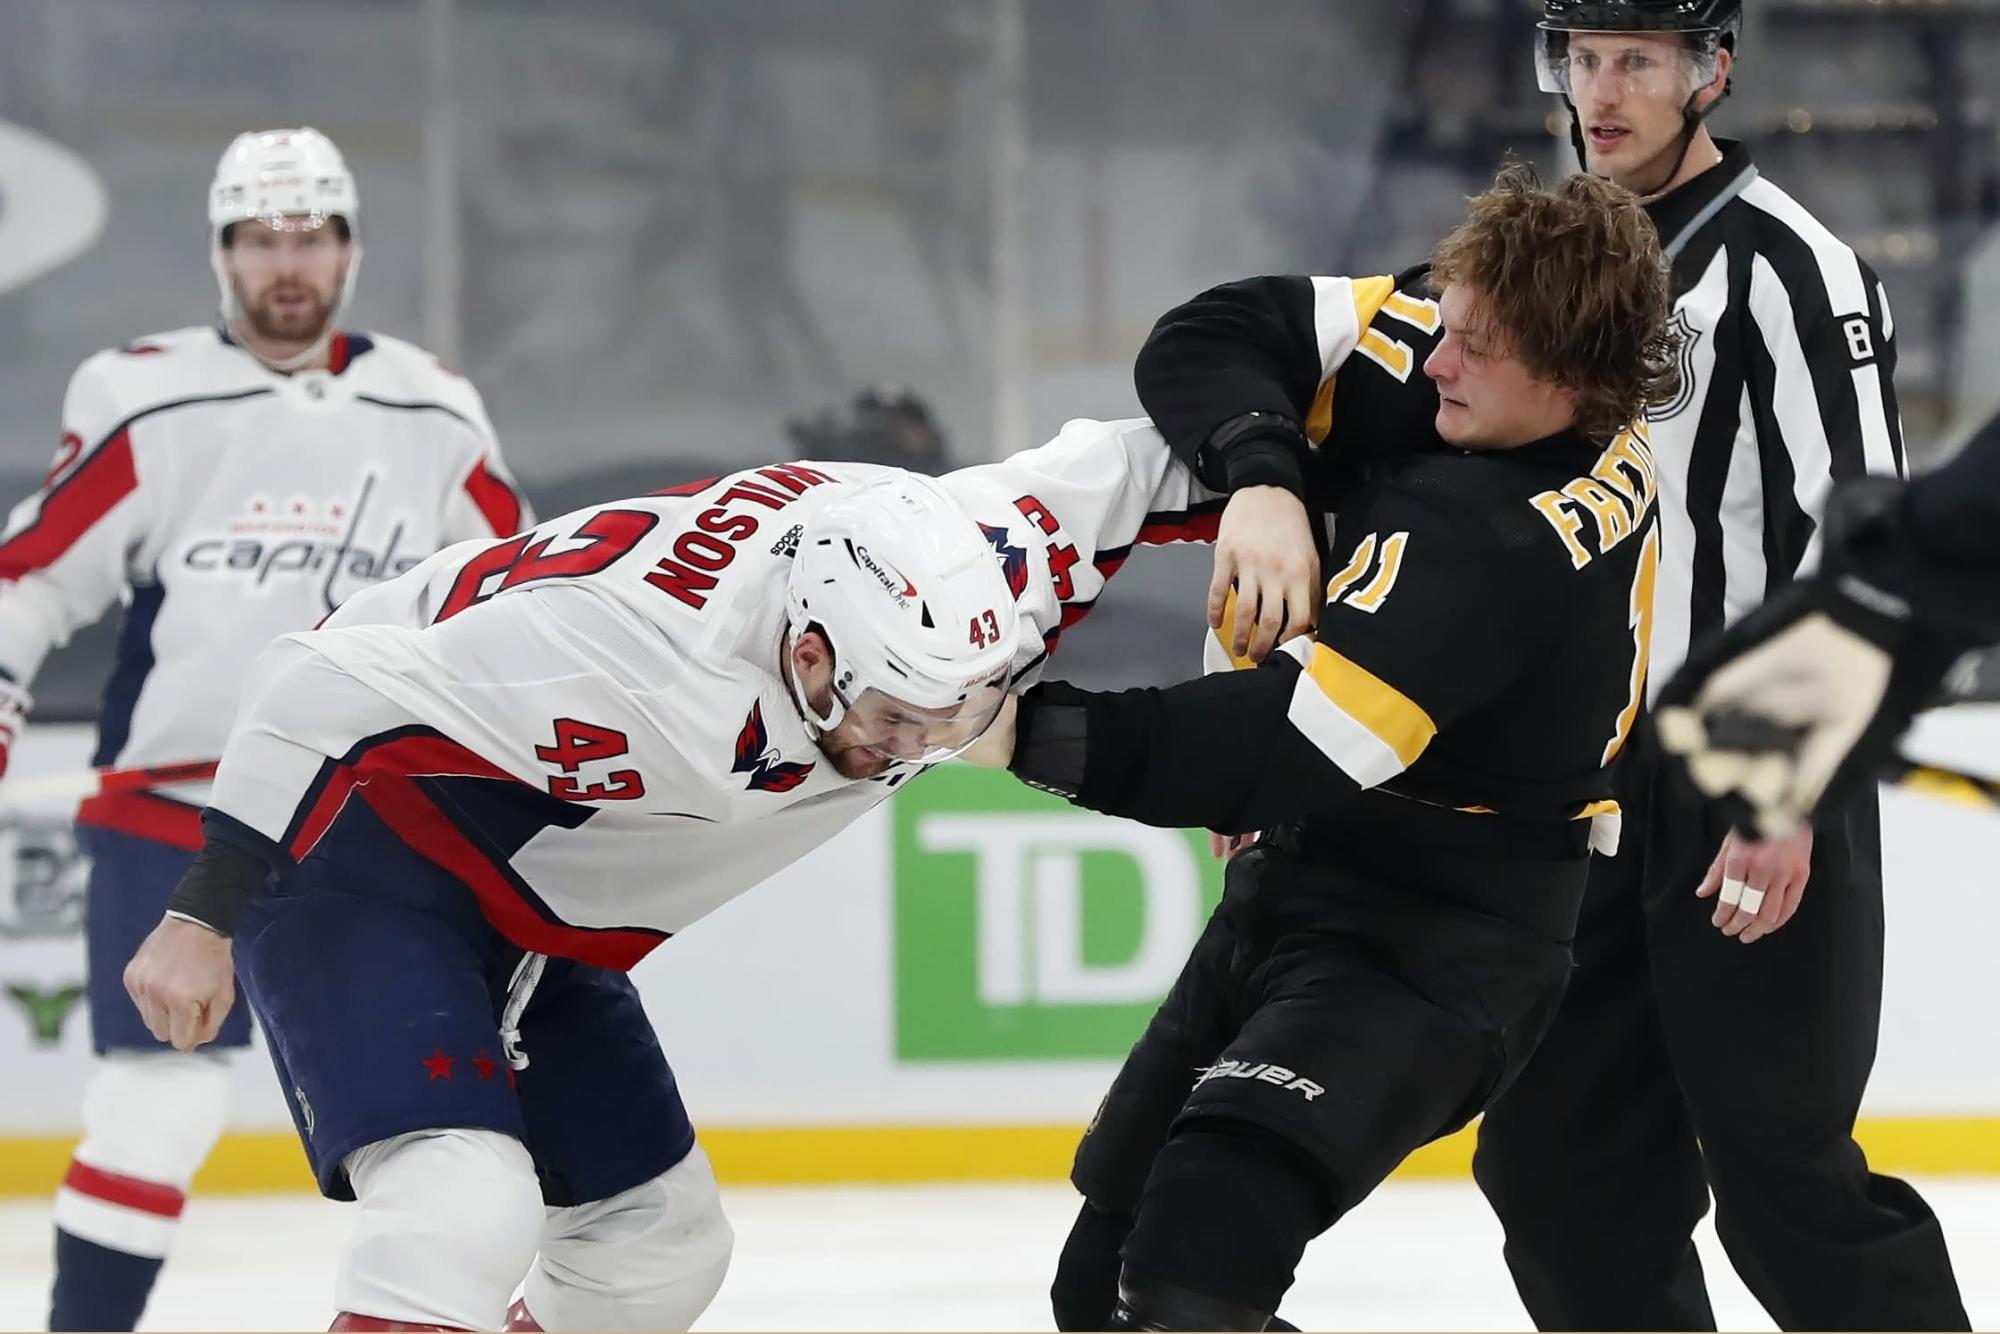 Bruins Respond To Head Shot With 5 1 Victory Over Capitals